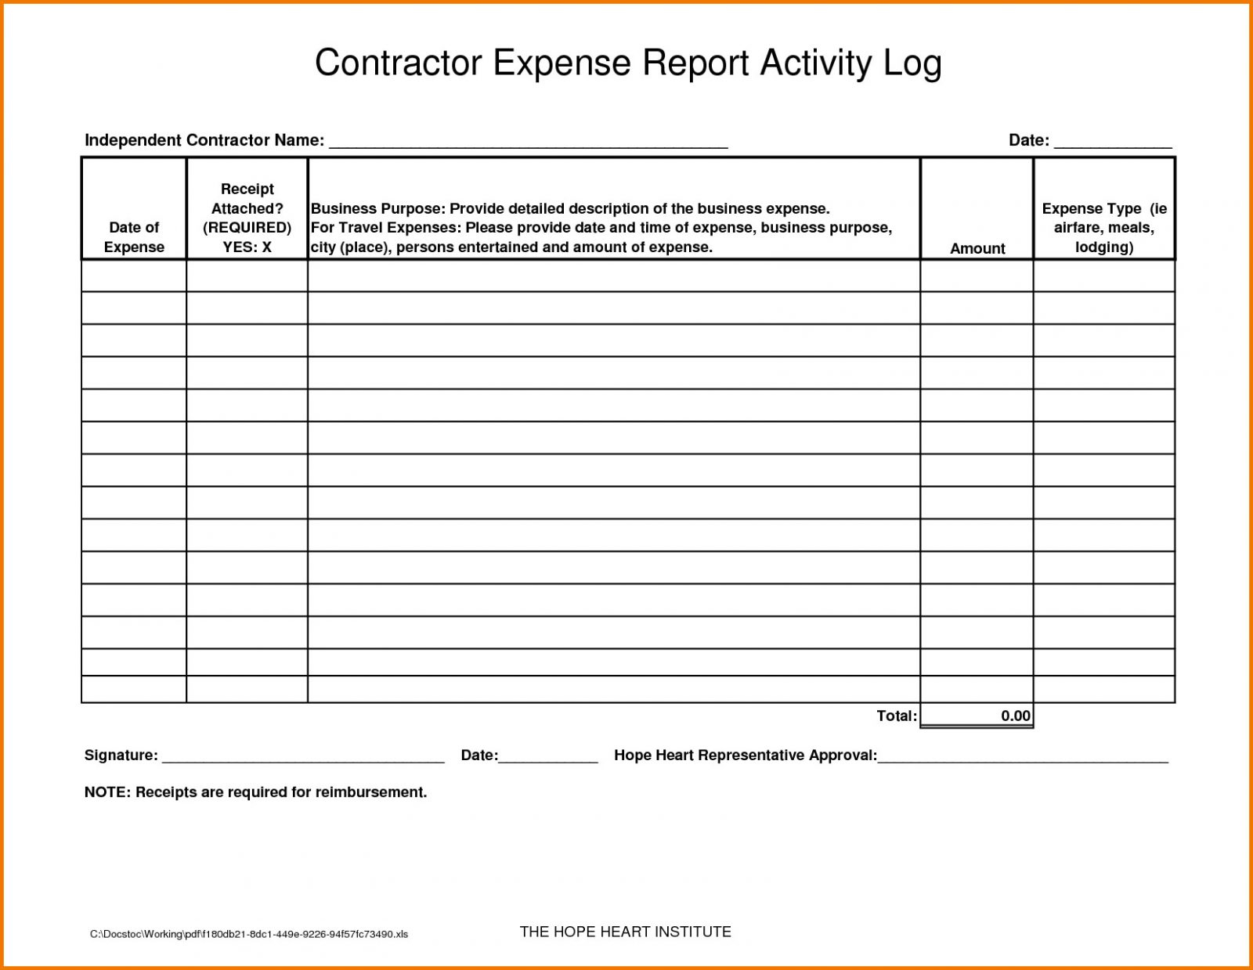 Spreadsheet Example Of Independent Contractor Expenses Selo L Ink Co Intended For Independent Contractor Expenses Spreadsheet